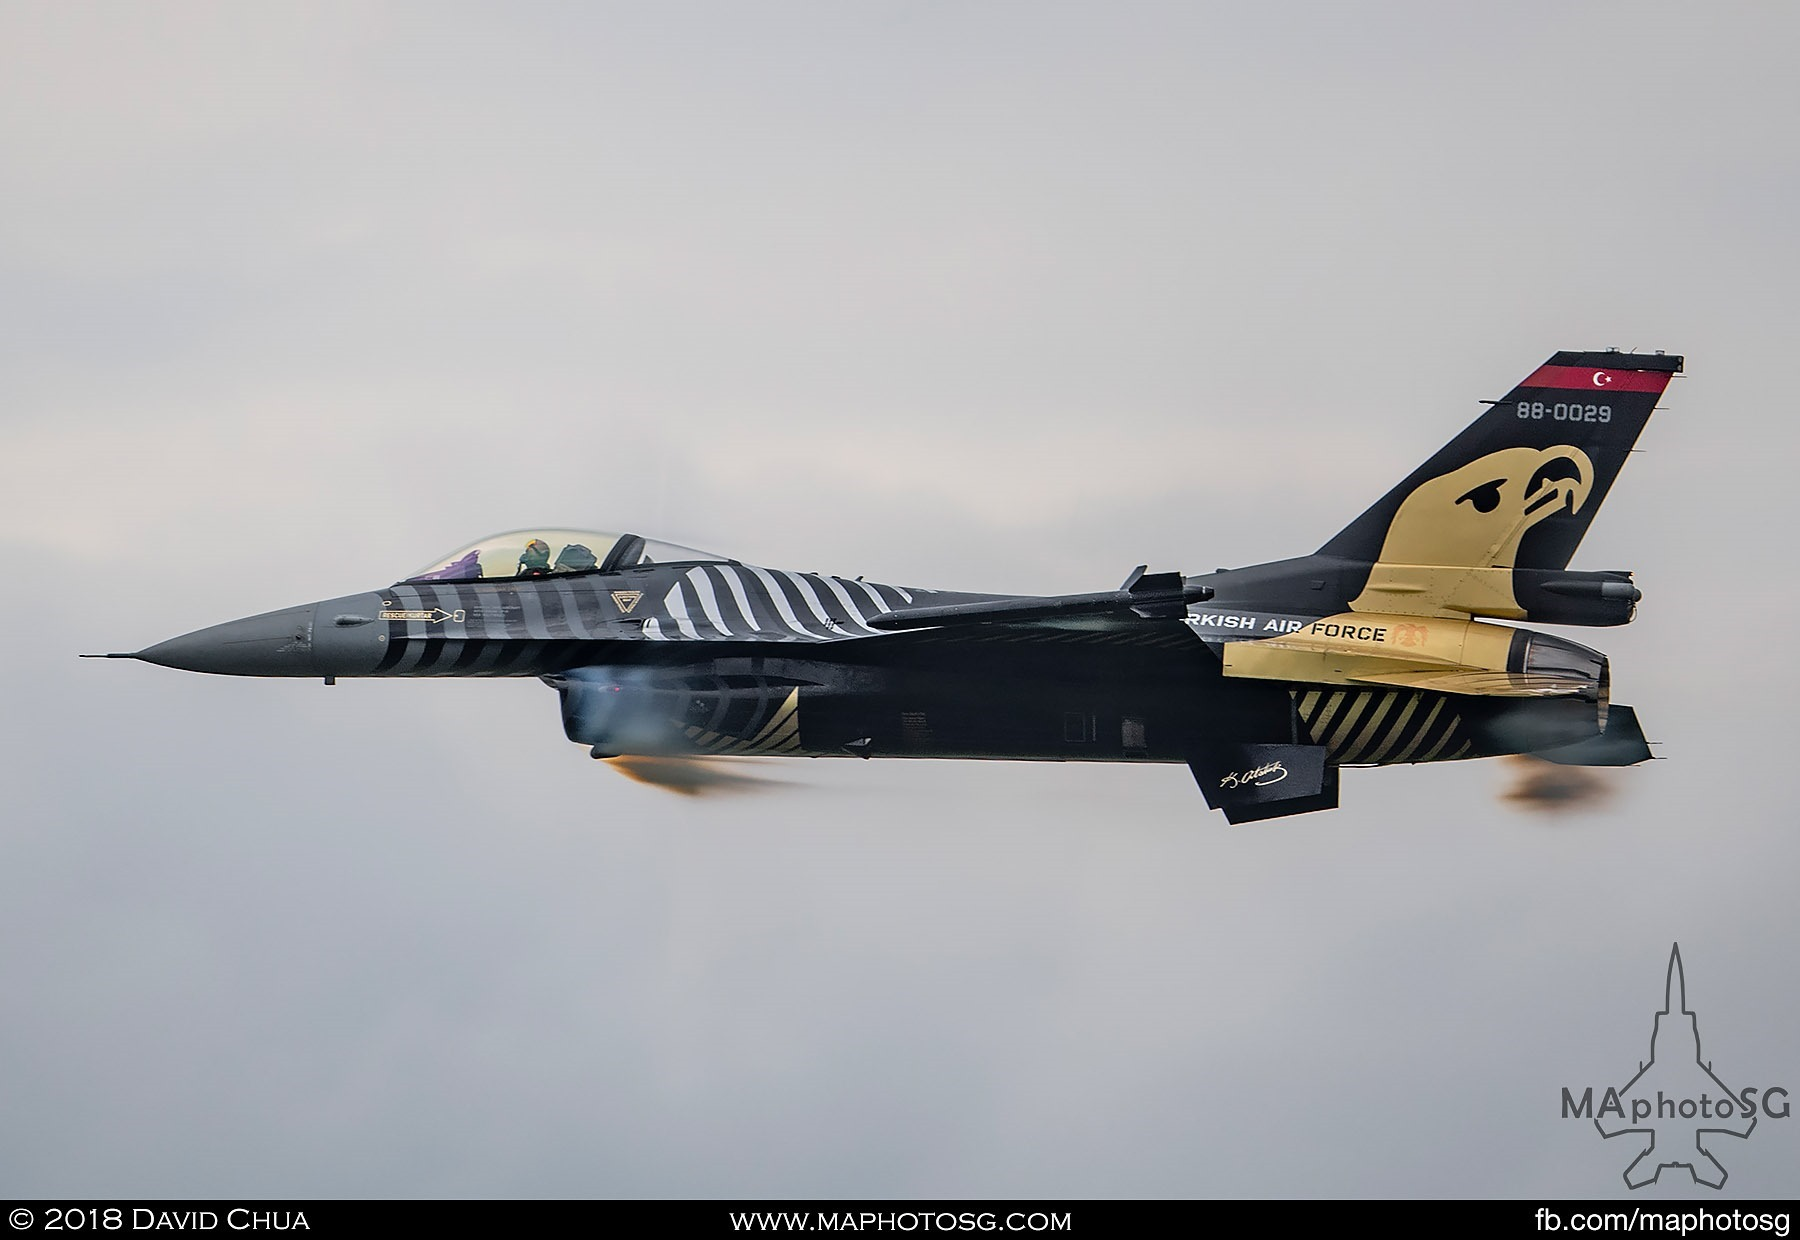 43. Turkish Air Force Solo Turk F-16C performing a high speed pass